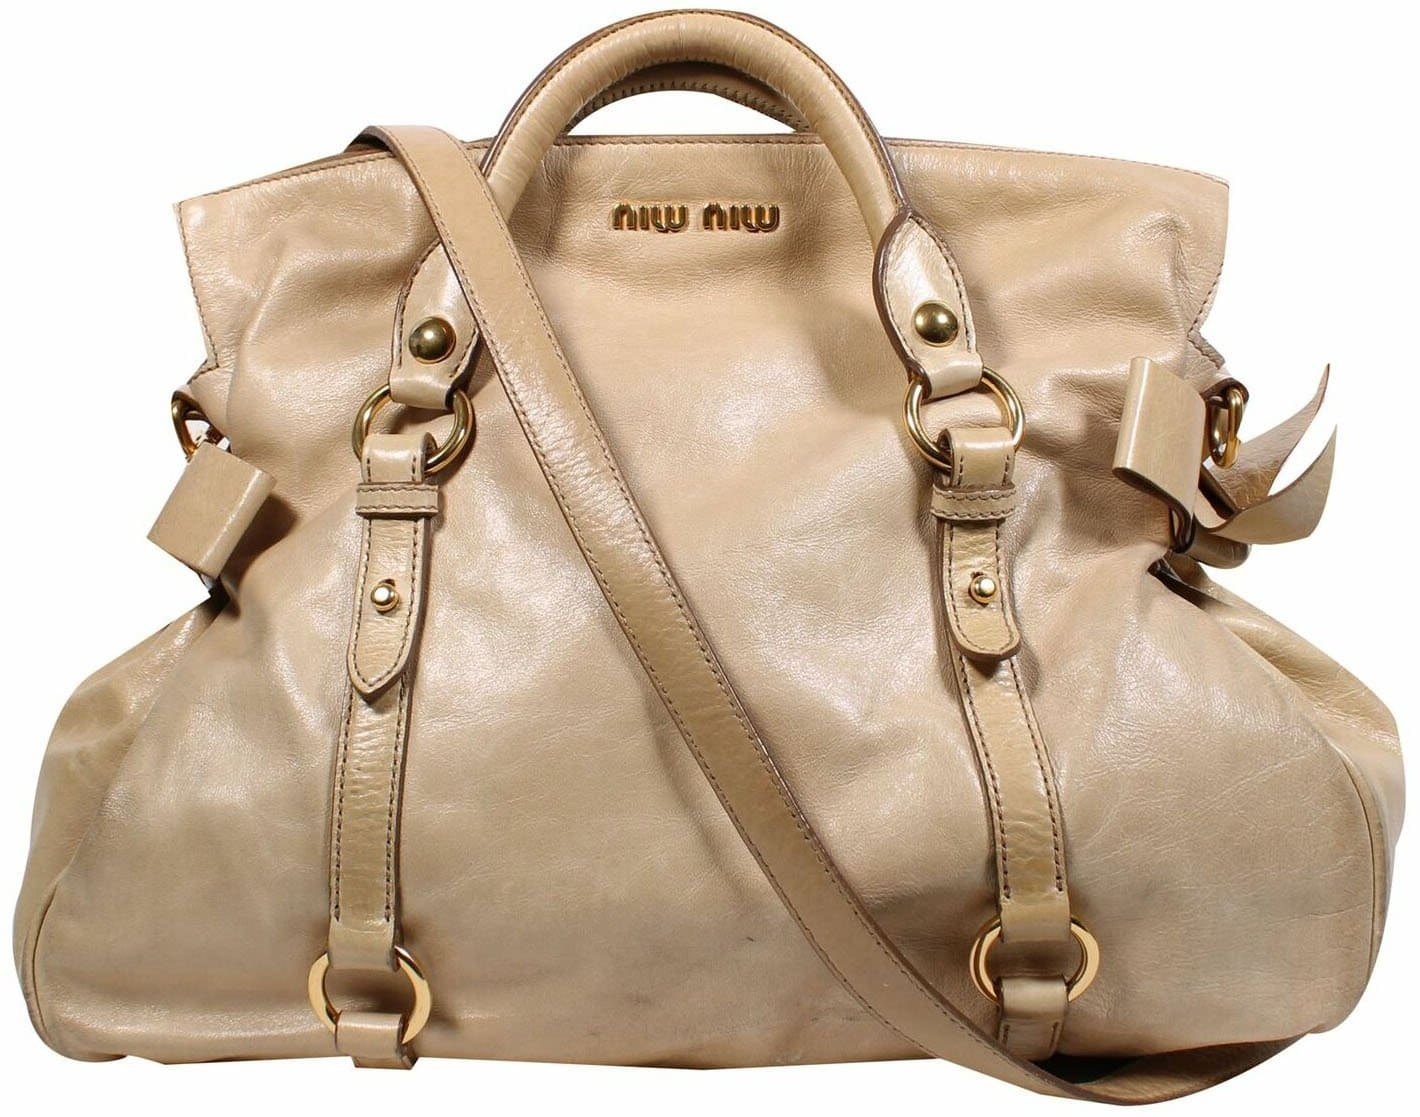 Miu Miu's classic Vitello Bow bag features rolled double top handles with a fold-over top and bow accents on the sides